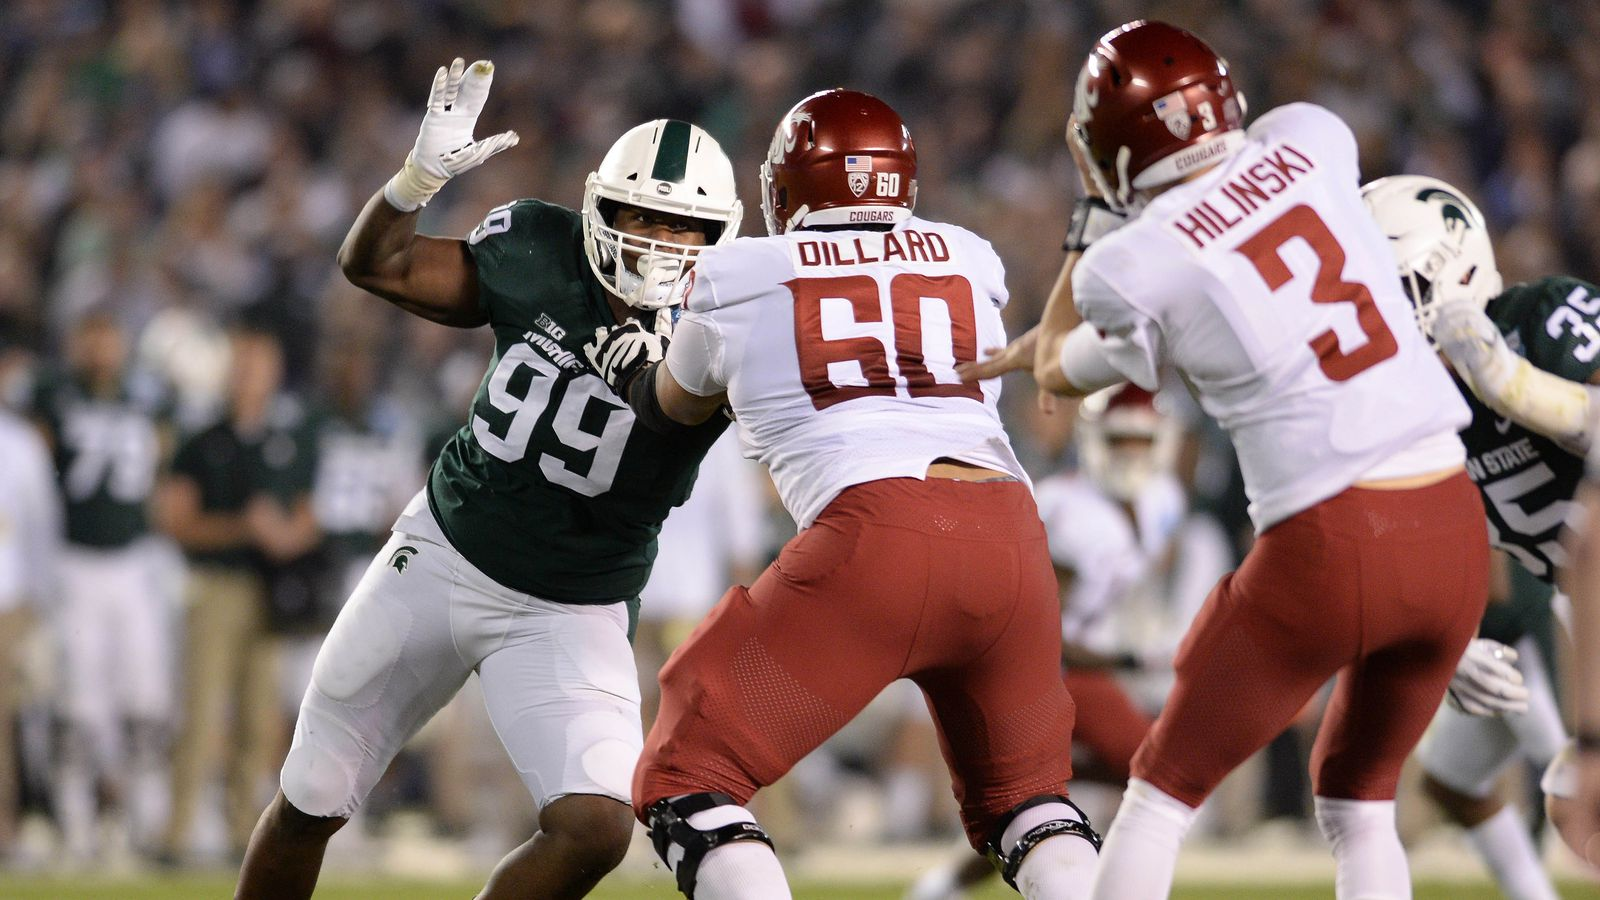 Andre Dillard film analysis: An athletic, natural left tackle